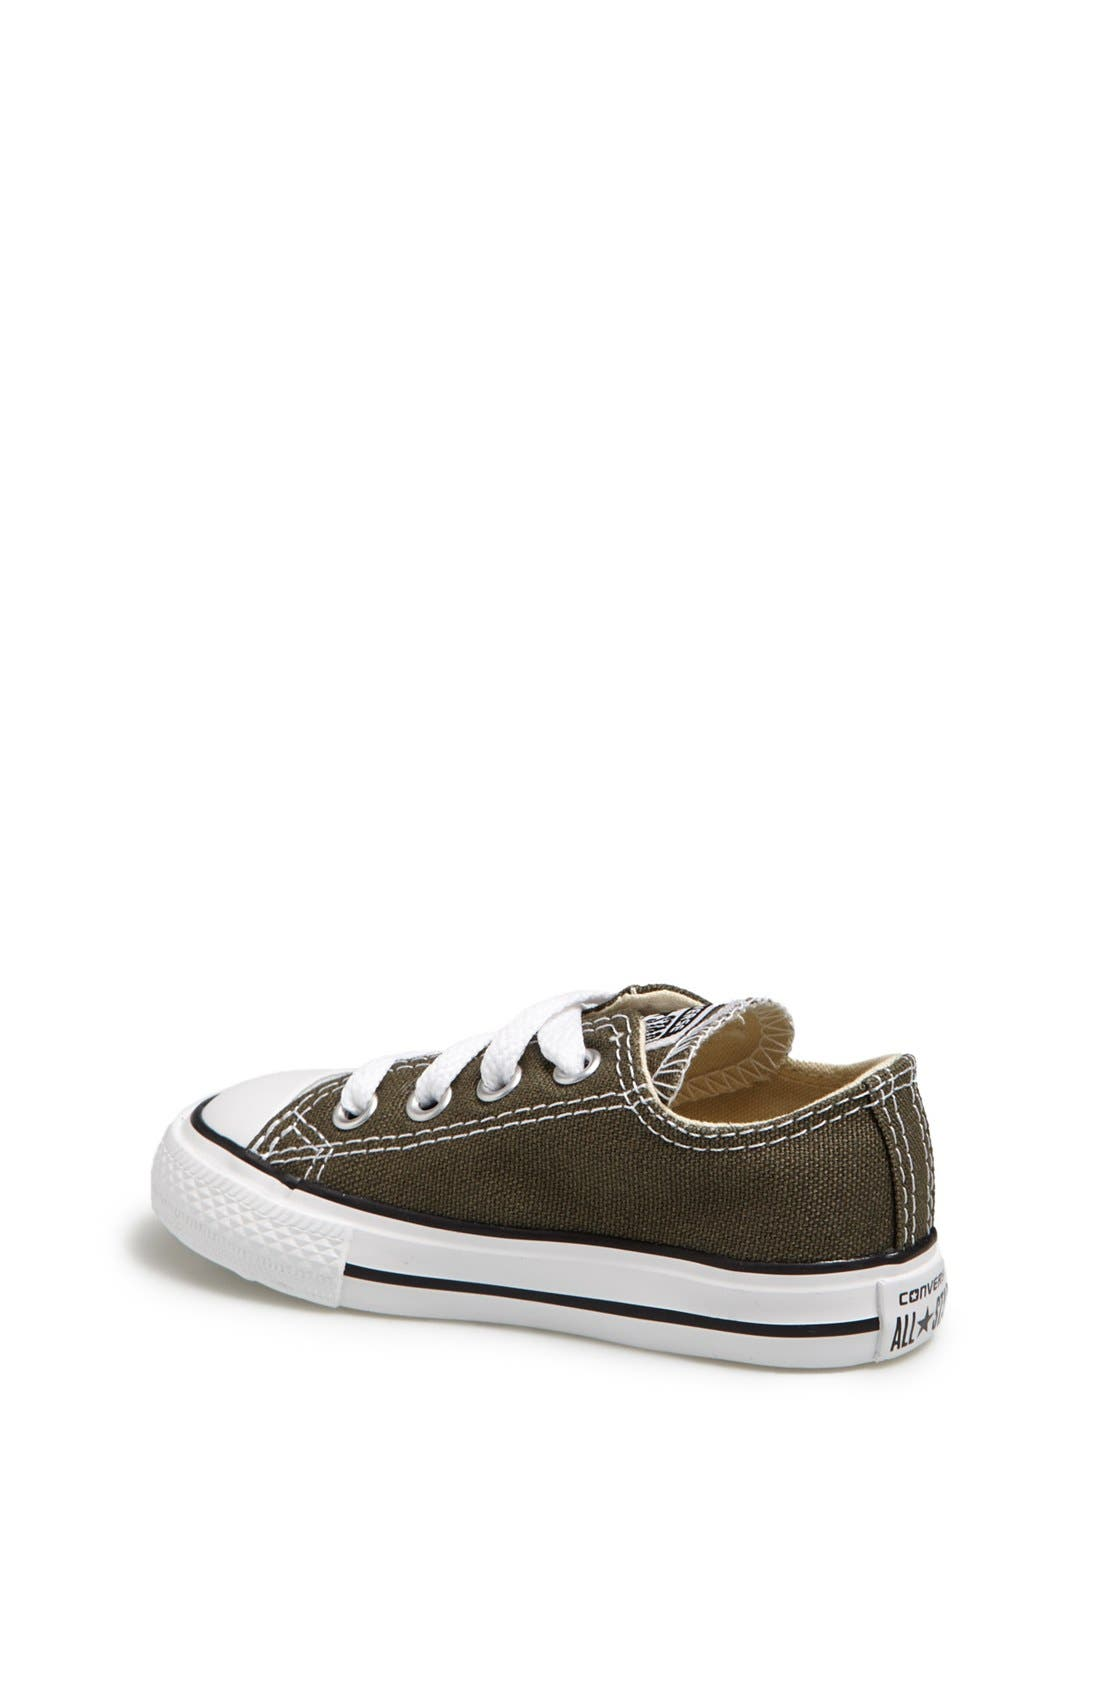 Alternate Image 2  - Converse Chuck Taylor® All Star® Sneaker (Baby, Walker & Toddler)